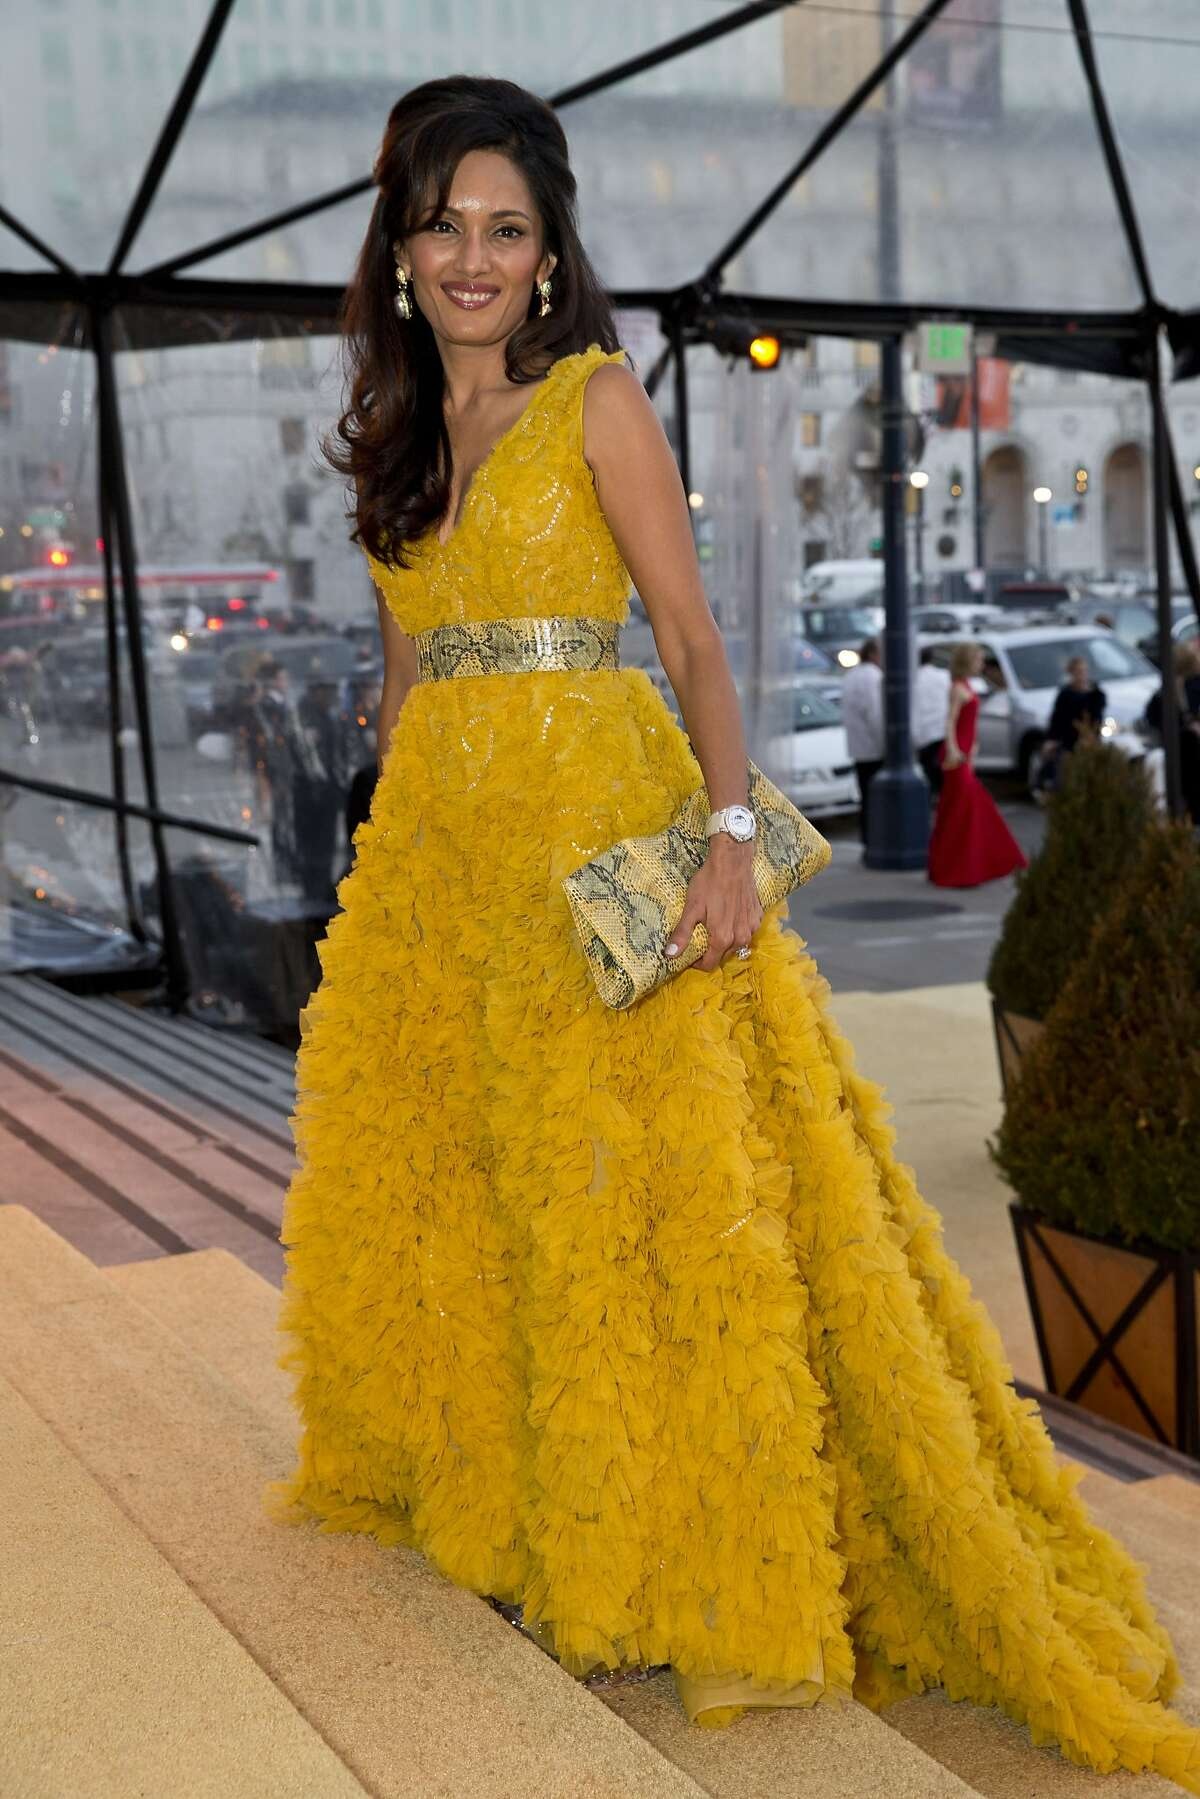 Komal Shah wears a gown by Dennis Basso while attending the San Francisco Ballet's Opening Night Gala in San Francisco, Calif., on Wednesday, January 22, 2014.